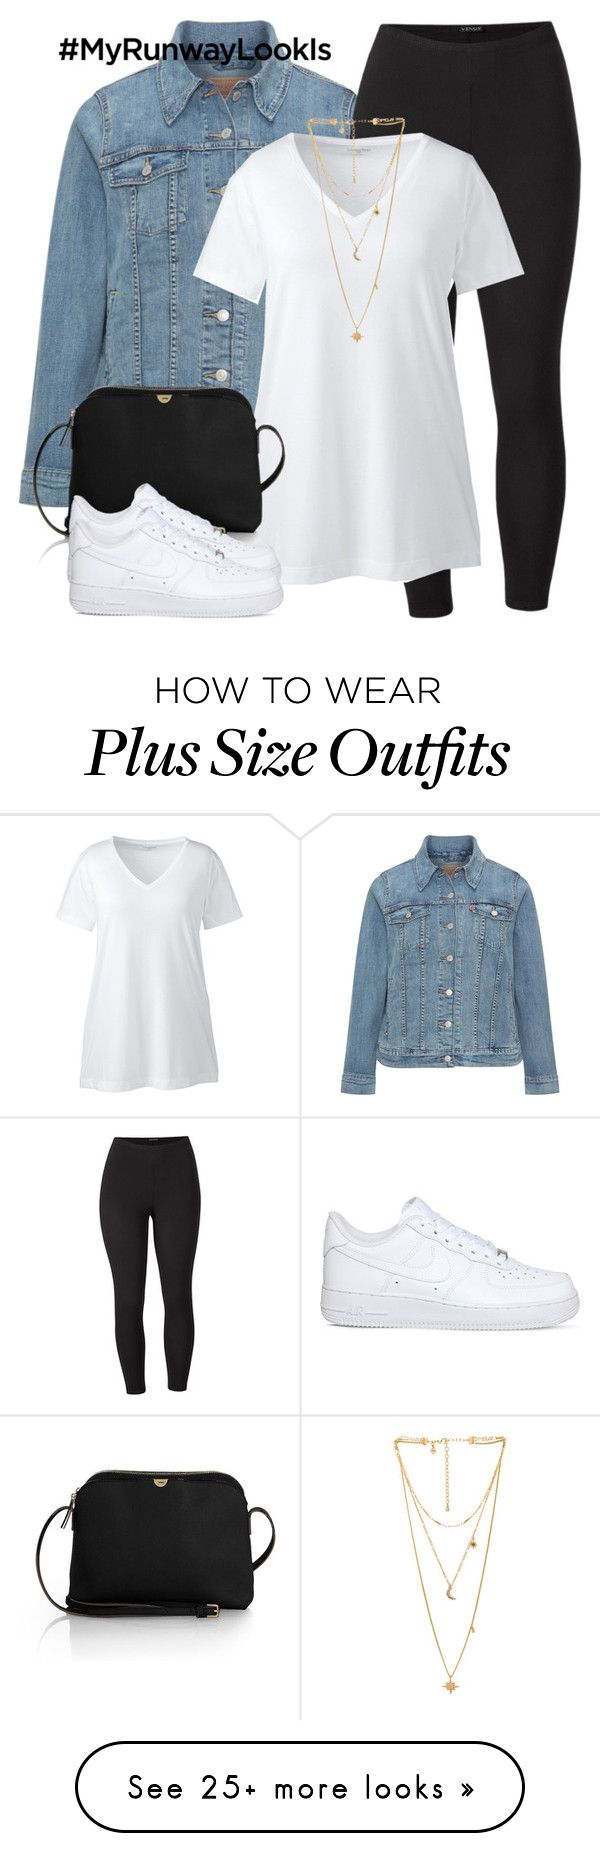 """""""Plus size """" by karlamichell on Polyvore featuring Levi's, Venus, Lands' End, The Row, NIKE, Rebecca Minkoff and plus size clothing"""